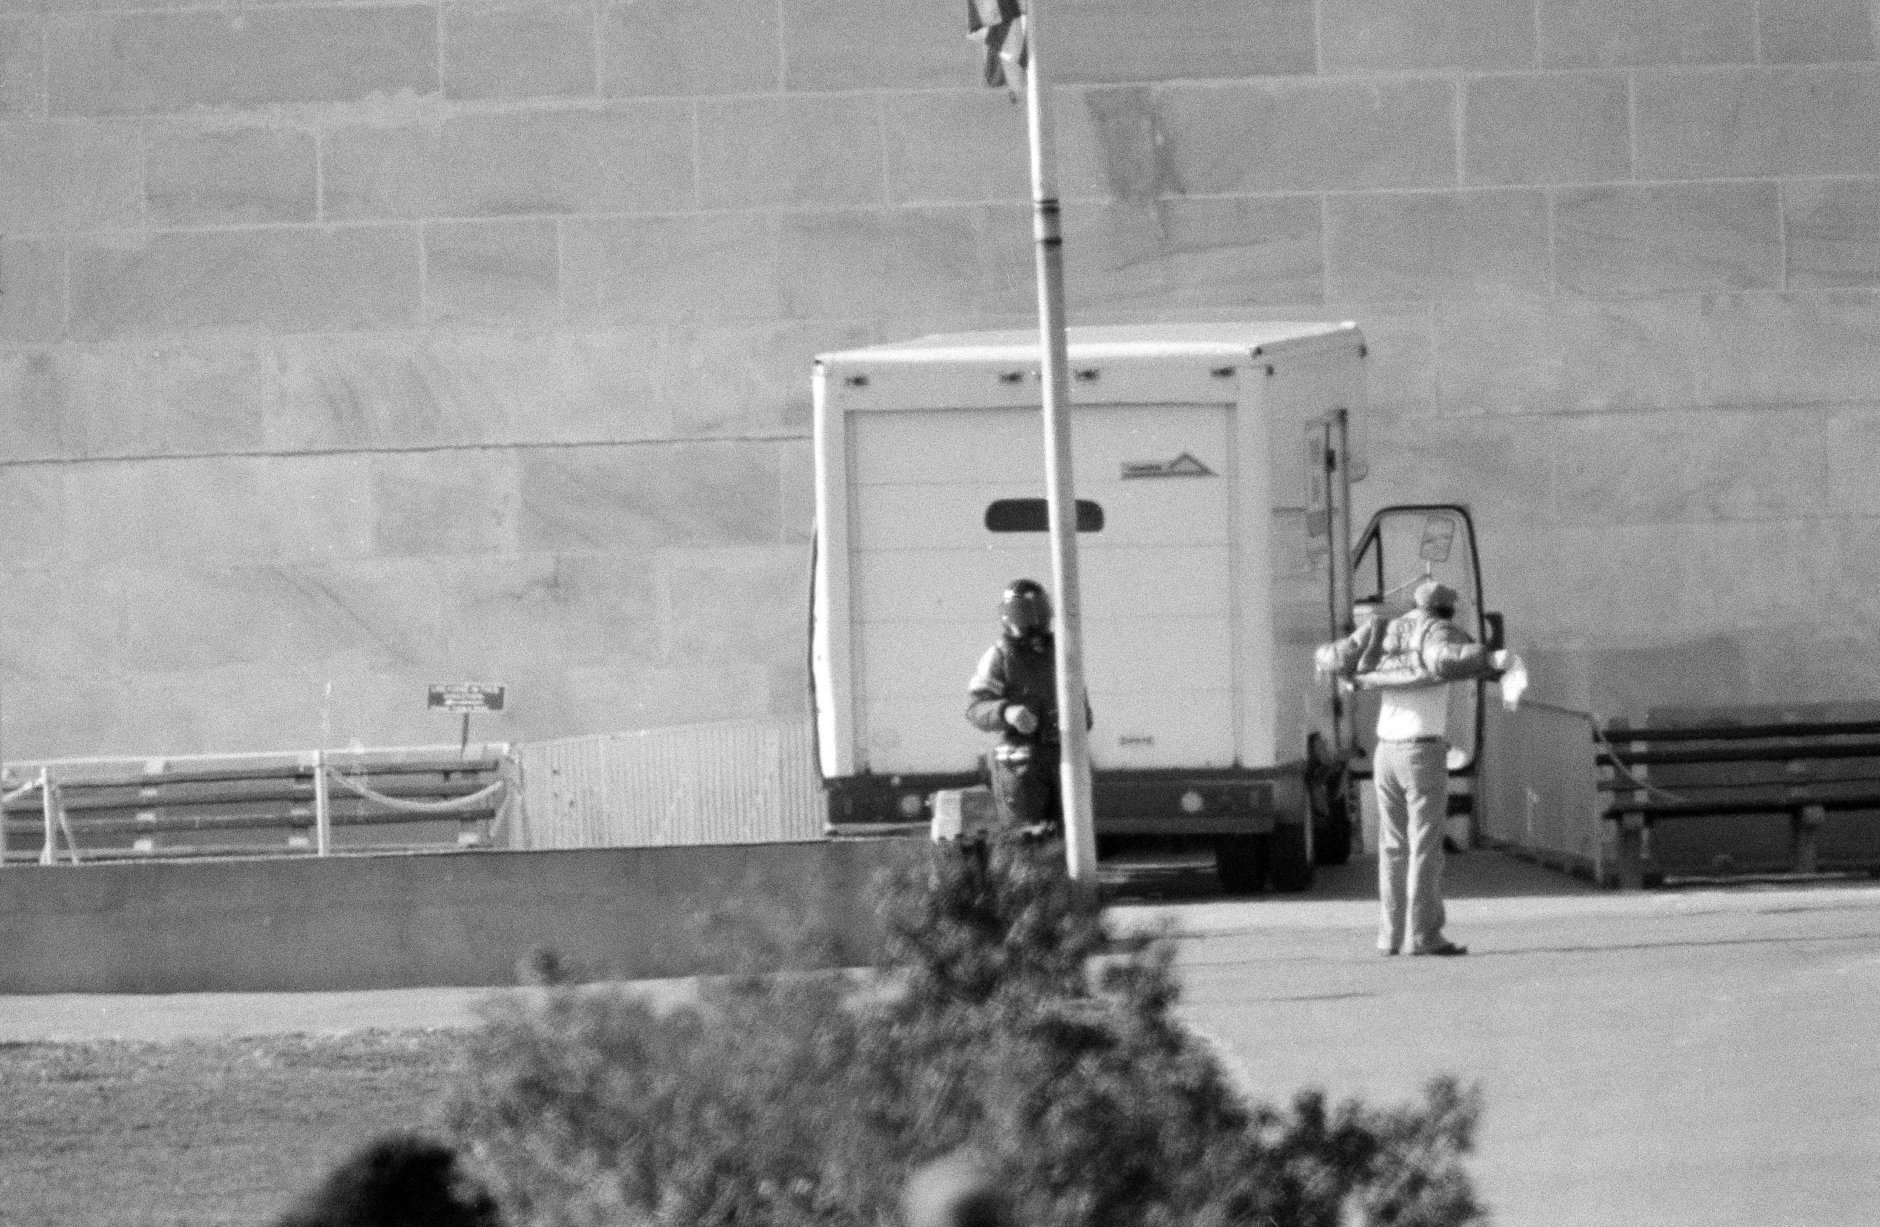 Associated Press reporter Steve Komarow, right, shows anti-nuclear weapons activist Norman Mayer, left, that he is  unarmed, at the base of the Washington Monument in Washington, D.C., Dec. 8, 1982. Mayer drove a white truck up to the monument and threatened to blow it up with 1,000 pounds of dynamite. Komarow was picked from a pool of reporters after Mayer requested to speak to a member of the news media. (AP Photo/Scott Stewart)